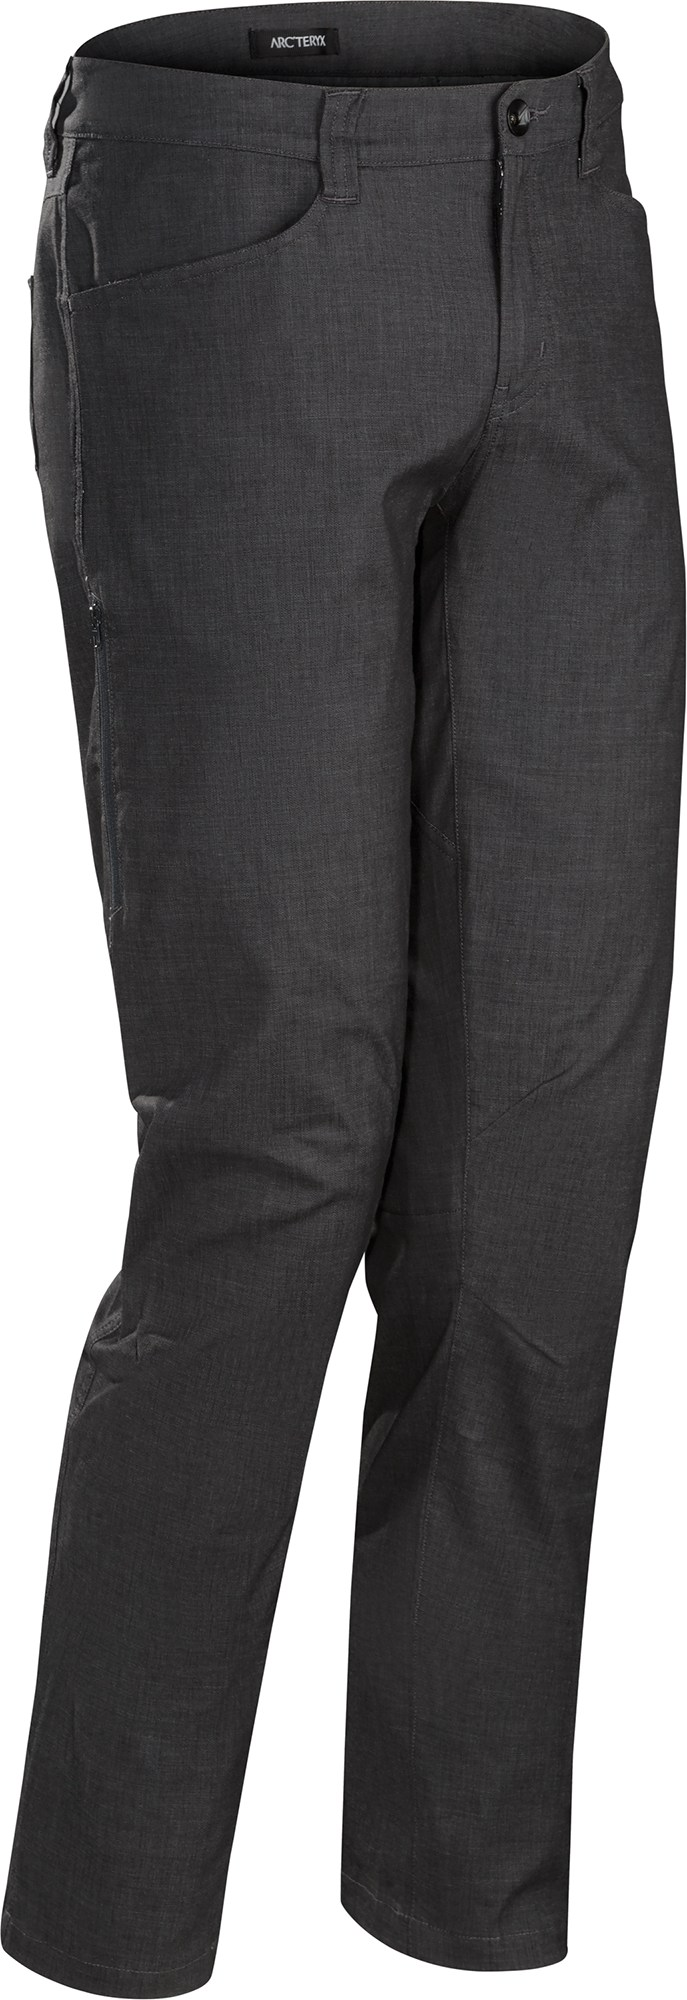 Arc'teryx A2B Commuter Pants - Men's